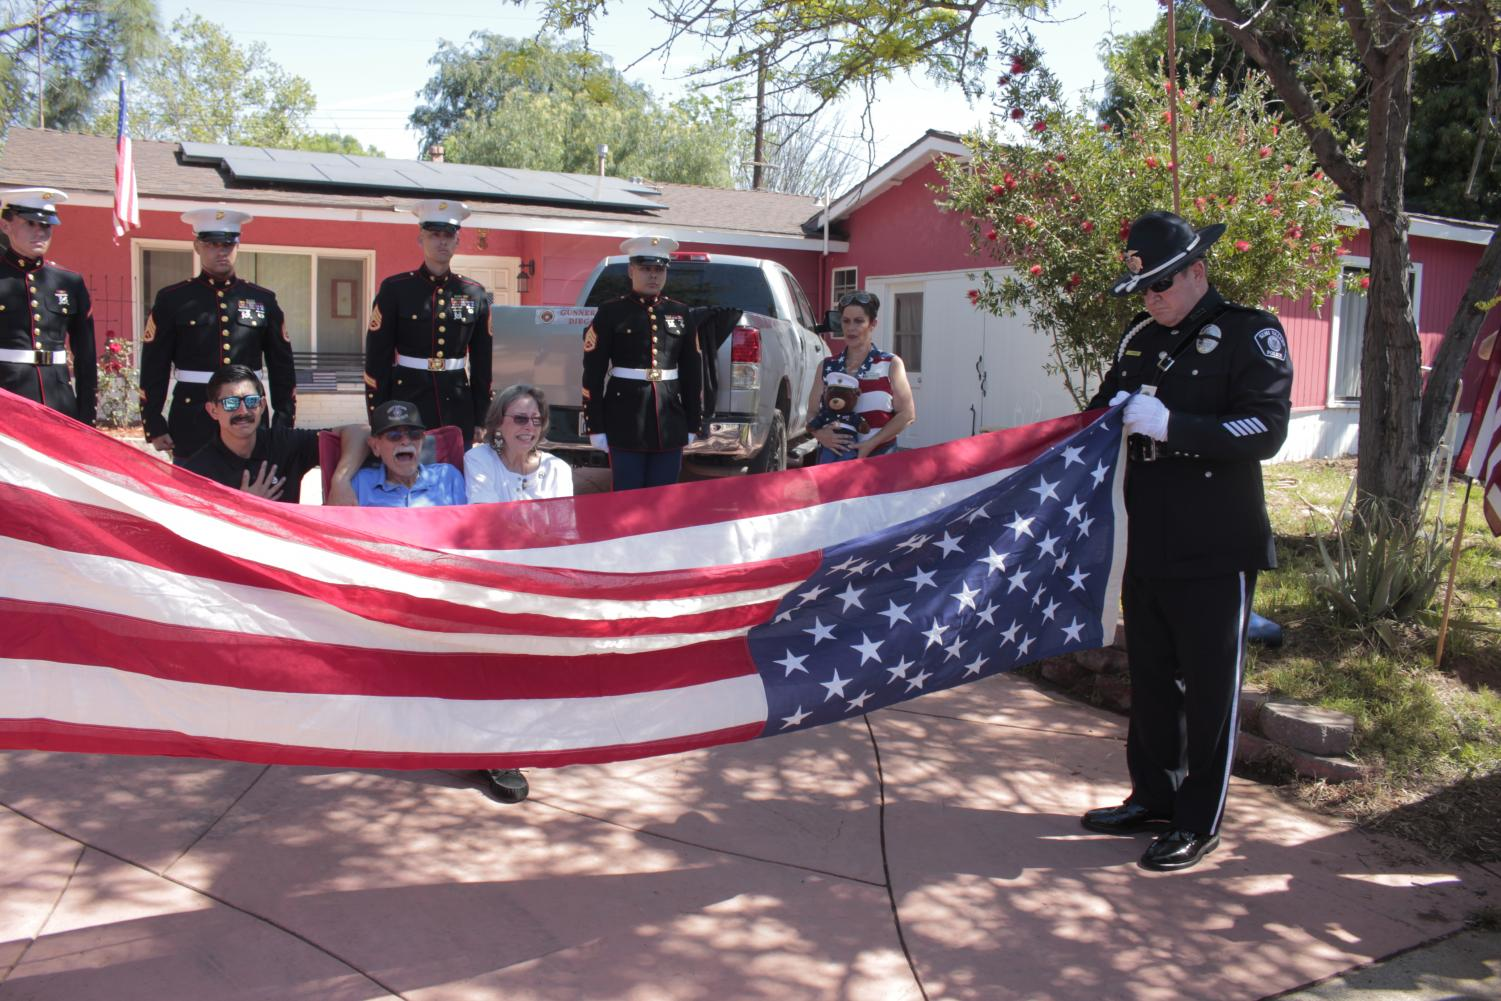 Andreas Pongo, Carlos Pongo and Katheryne Steffen watch as Simi Valley Police Dept. Honor Guard OFC Joe Pesce performs the flag-folding ceremony at the Pongo home in Simi Valley as members of the U.S. Marine Corps stand watch on April 26, 2020. The flag was presented to Carlos Pongo, father of Diego Pongo who was killed in action in Iraq.